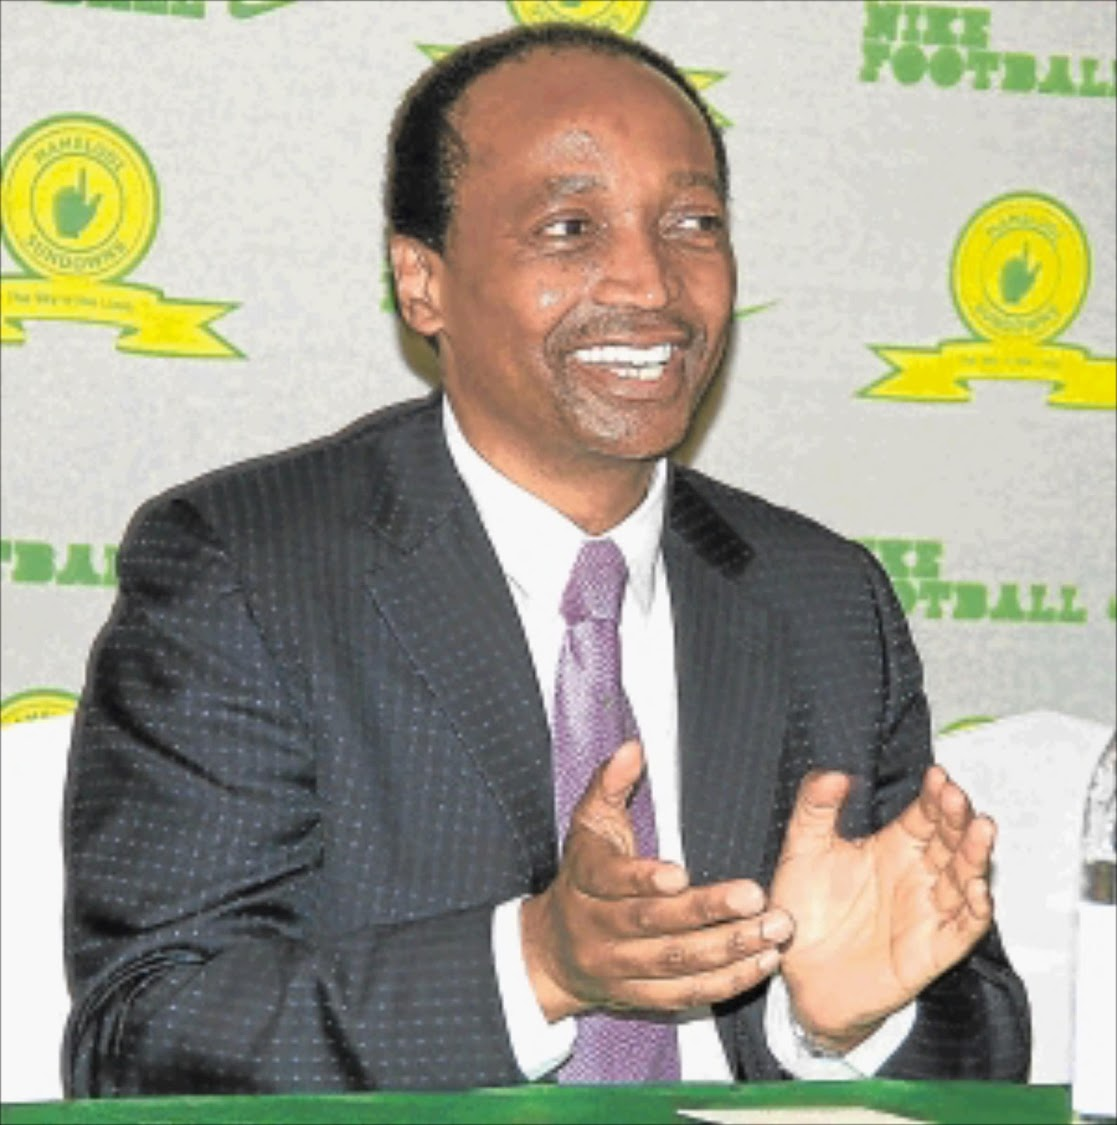 Motsepe has been in charge since 2003 after buying a 51% controlling stake of the club from the Tsichlas family.